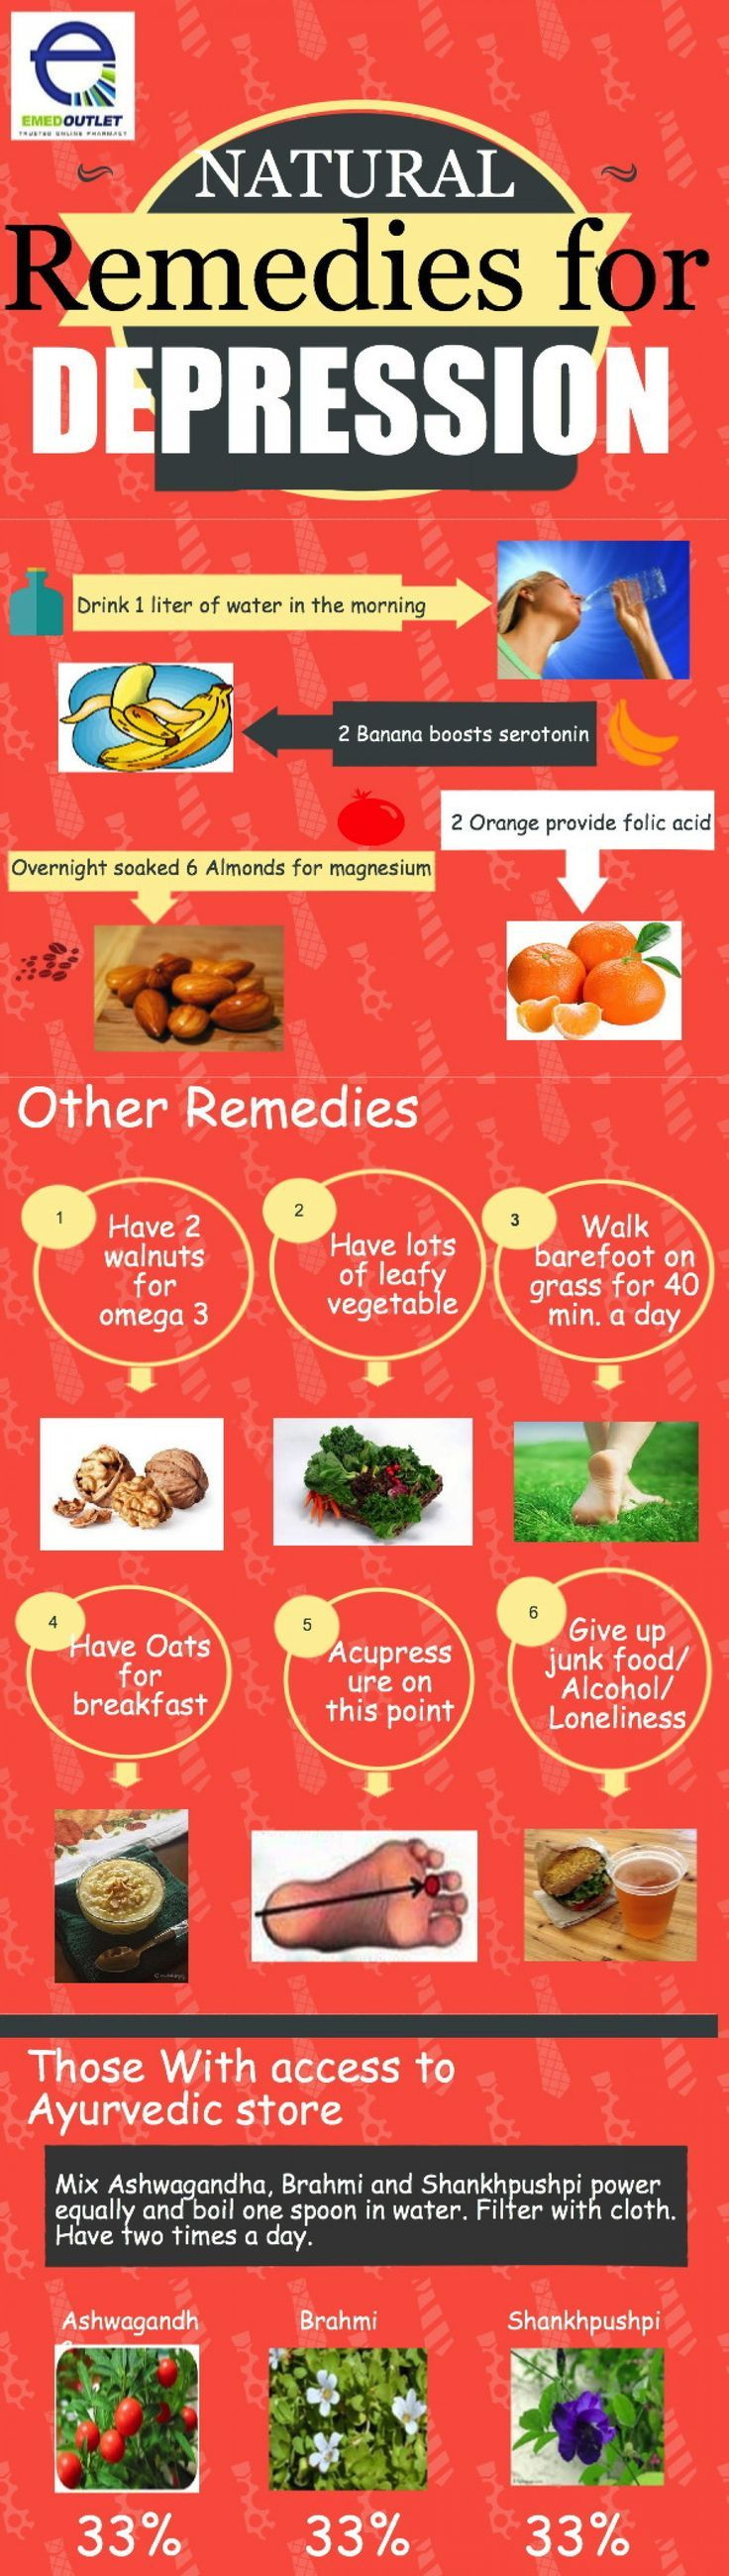 """Natural Remedies For Depression --shared by markturner415 on Aug 02, 2014 - See more at: visual.ly... 